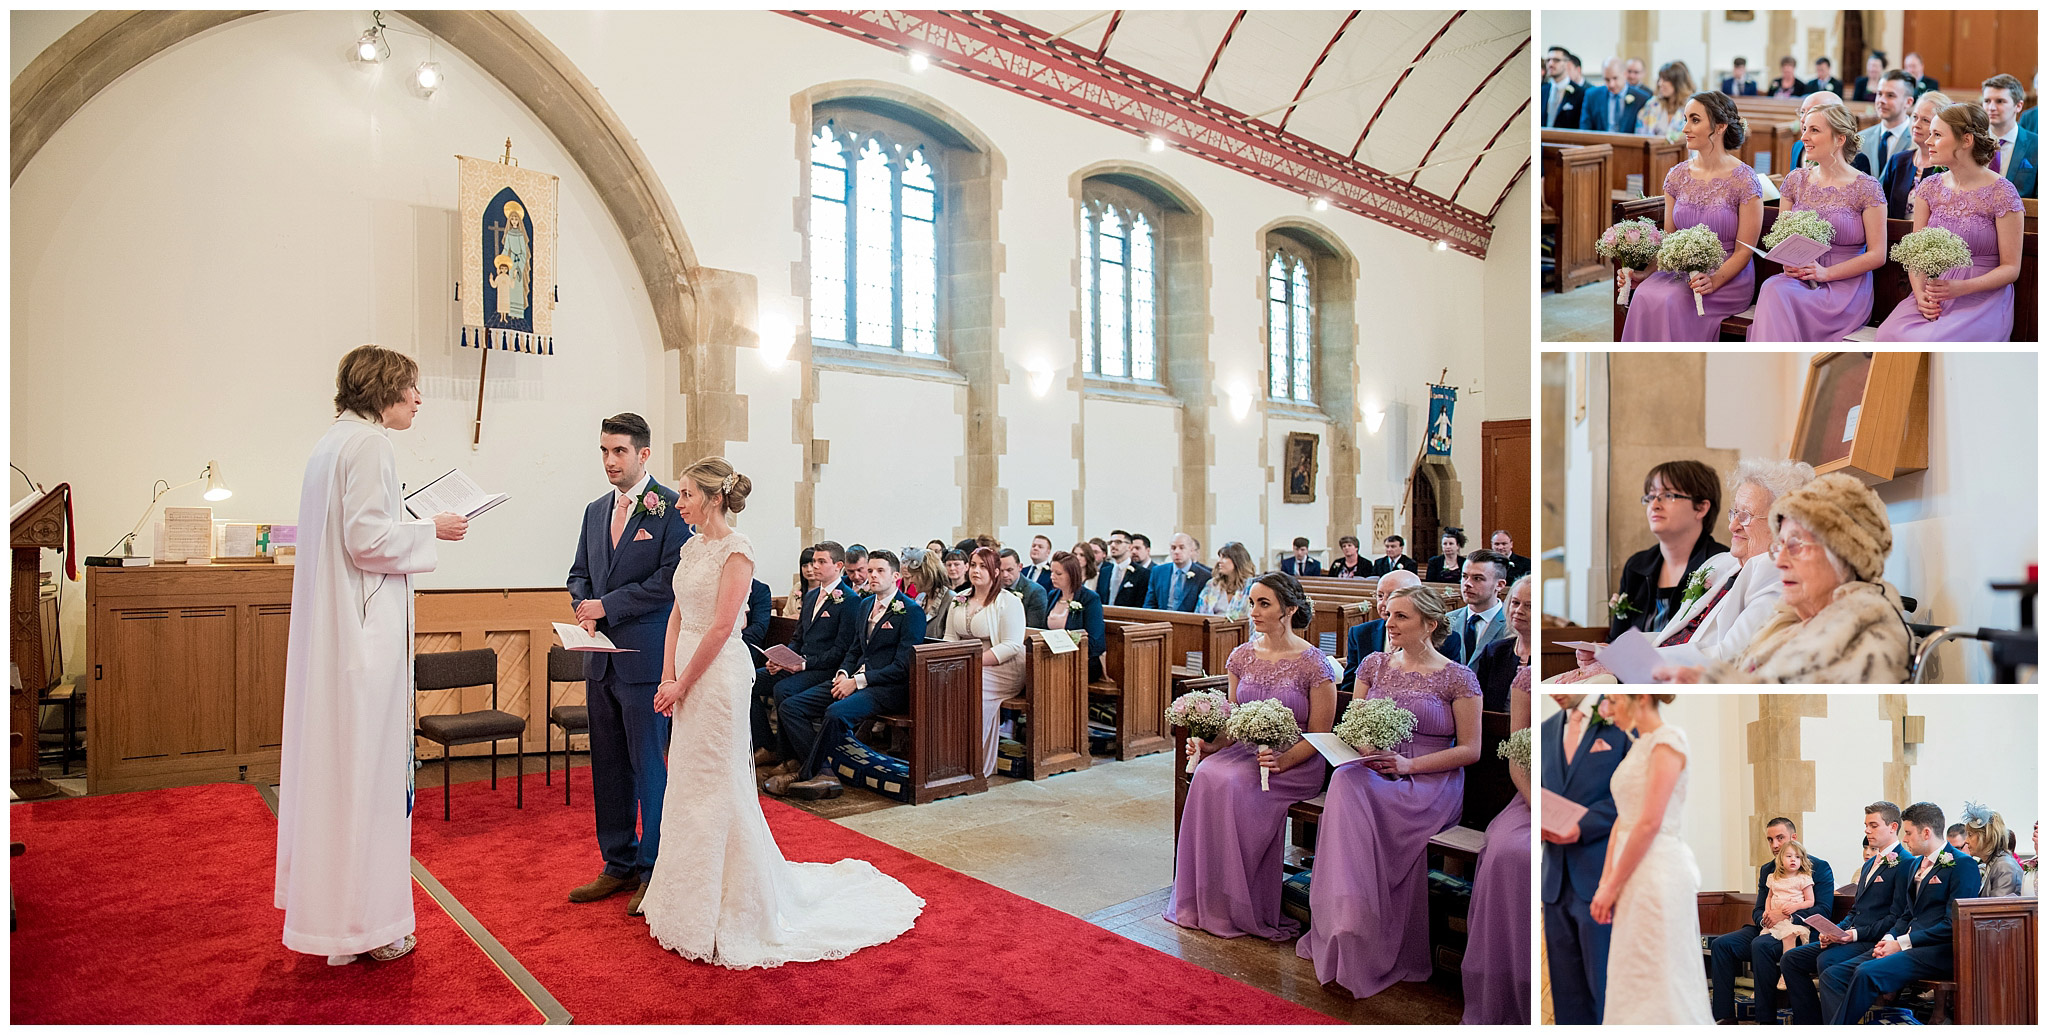 bride and groom saying their wedding vows, guests smiling and watching couple getting married